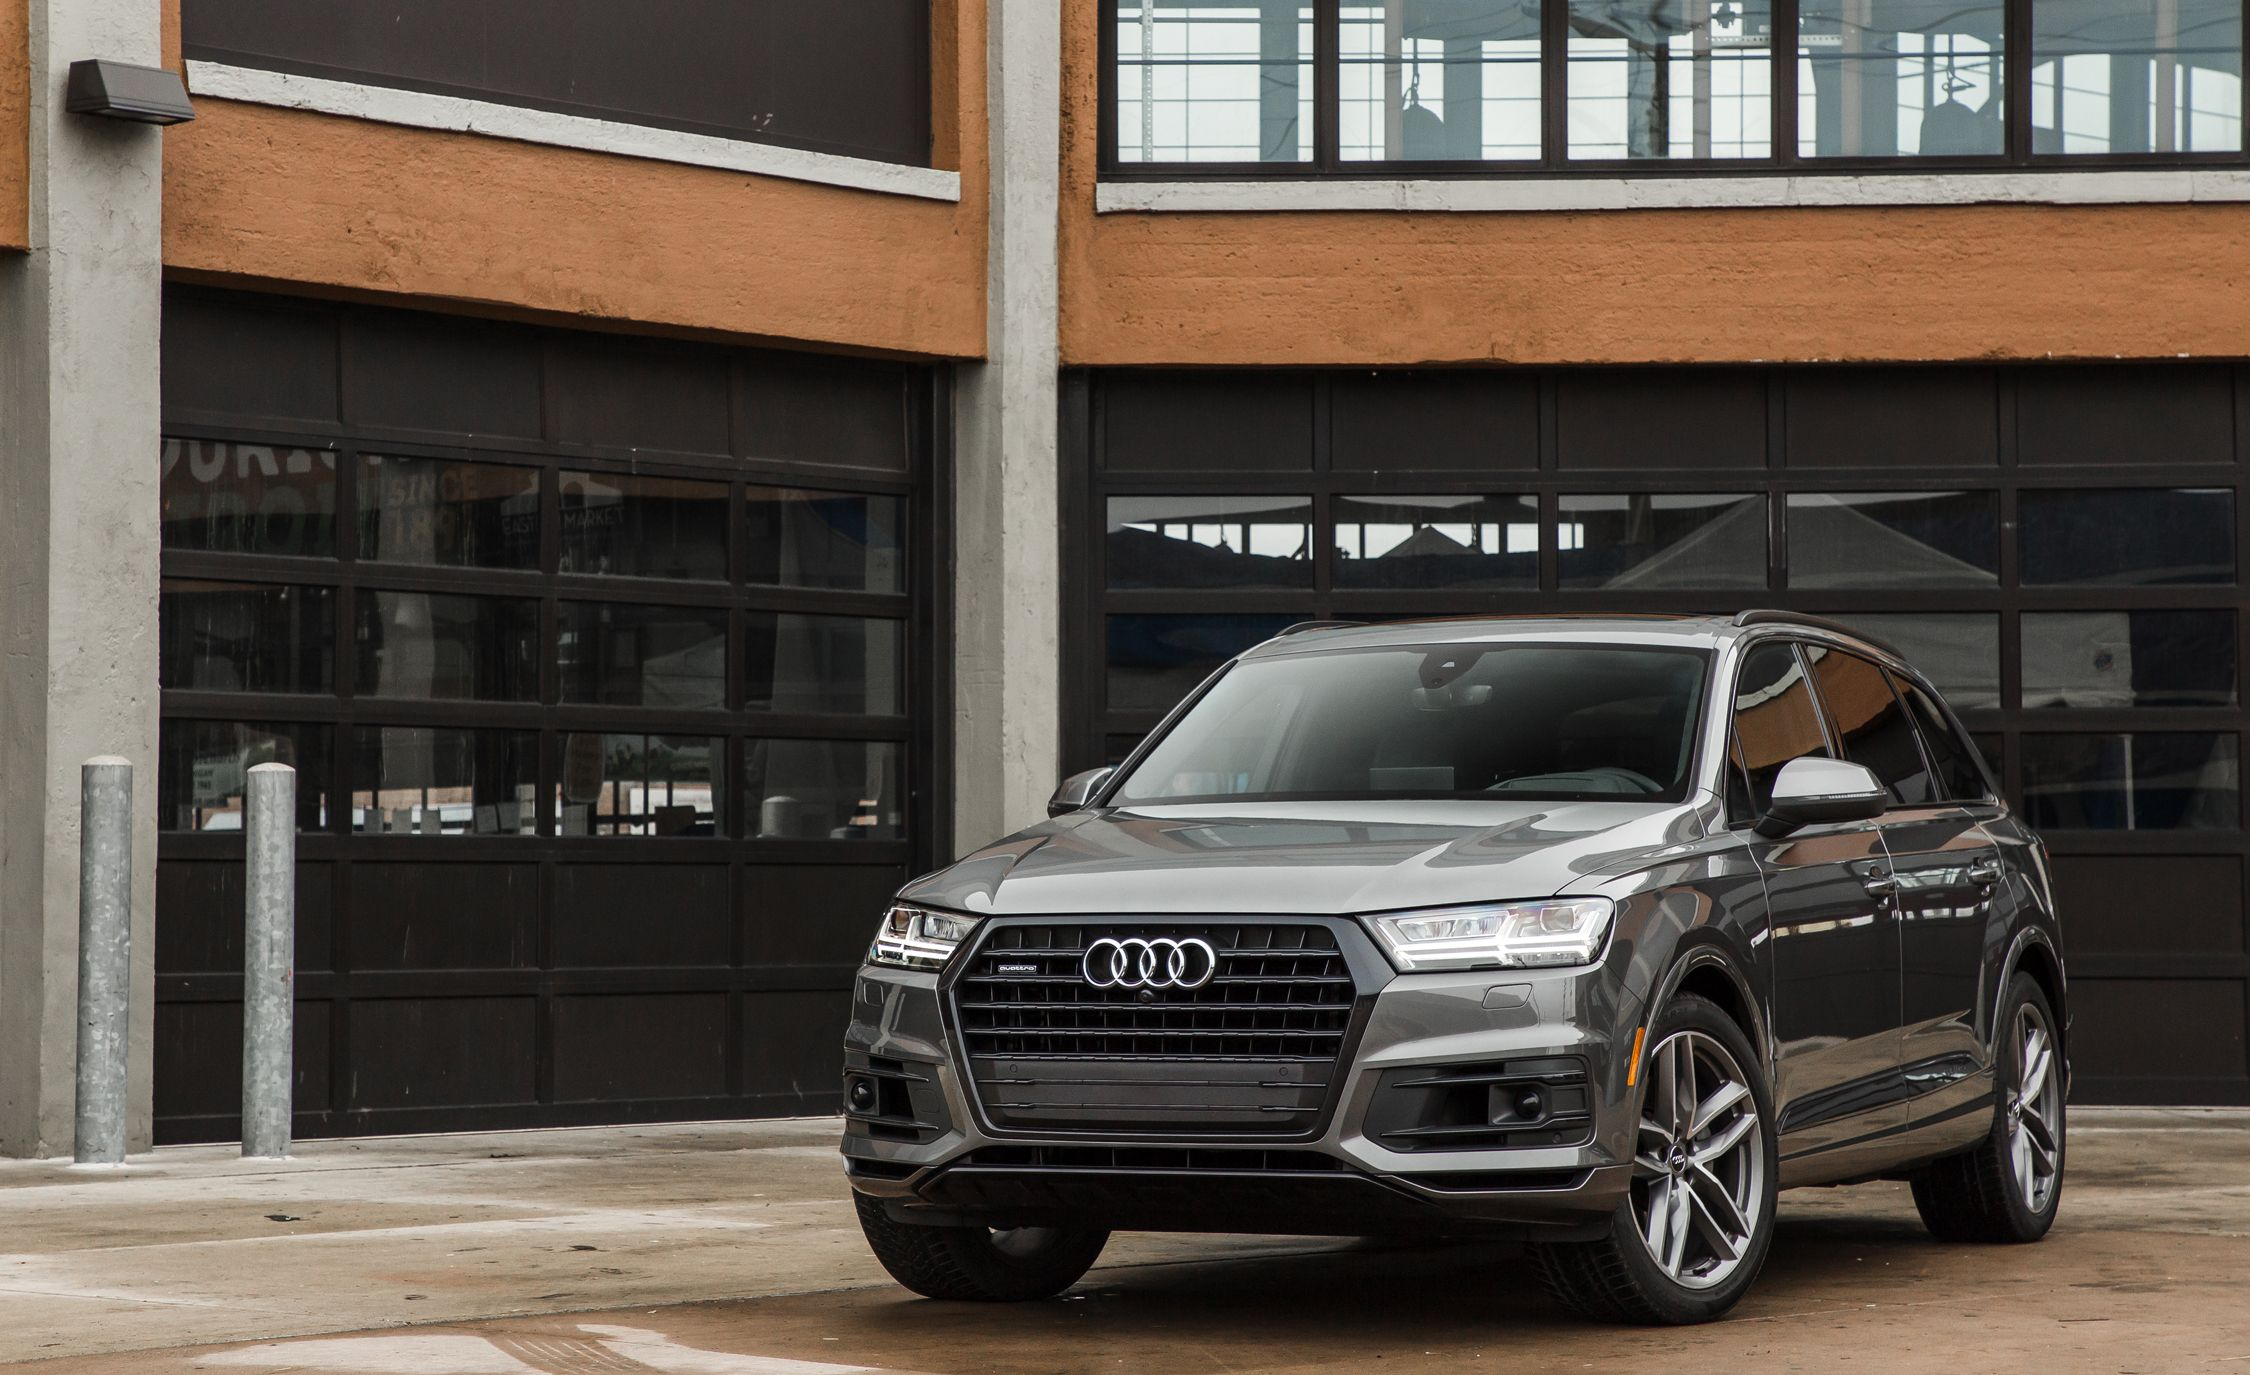 Audi Q Performance And Driving Impressions Review Car And - 2018 audi q7